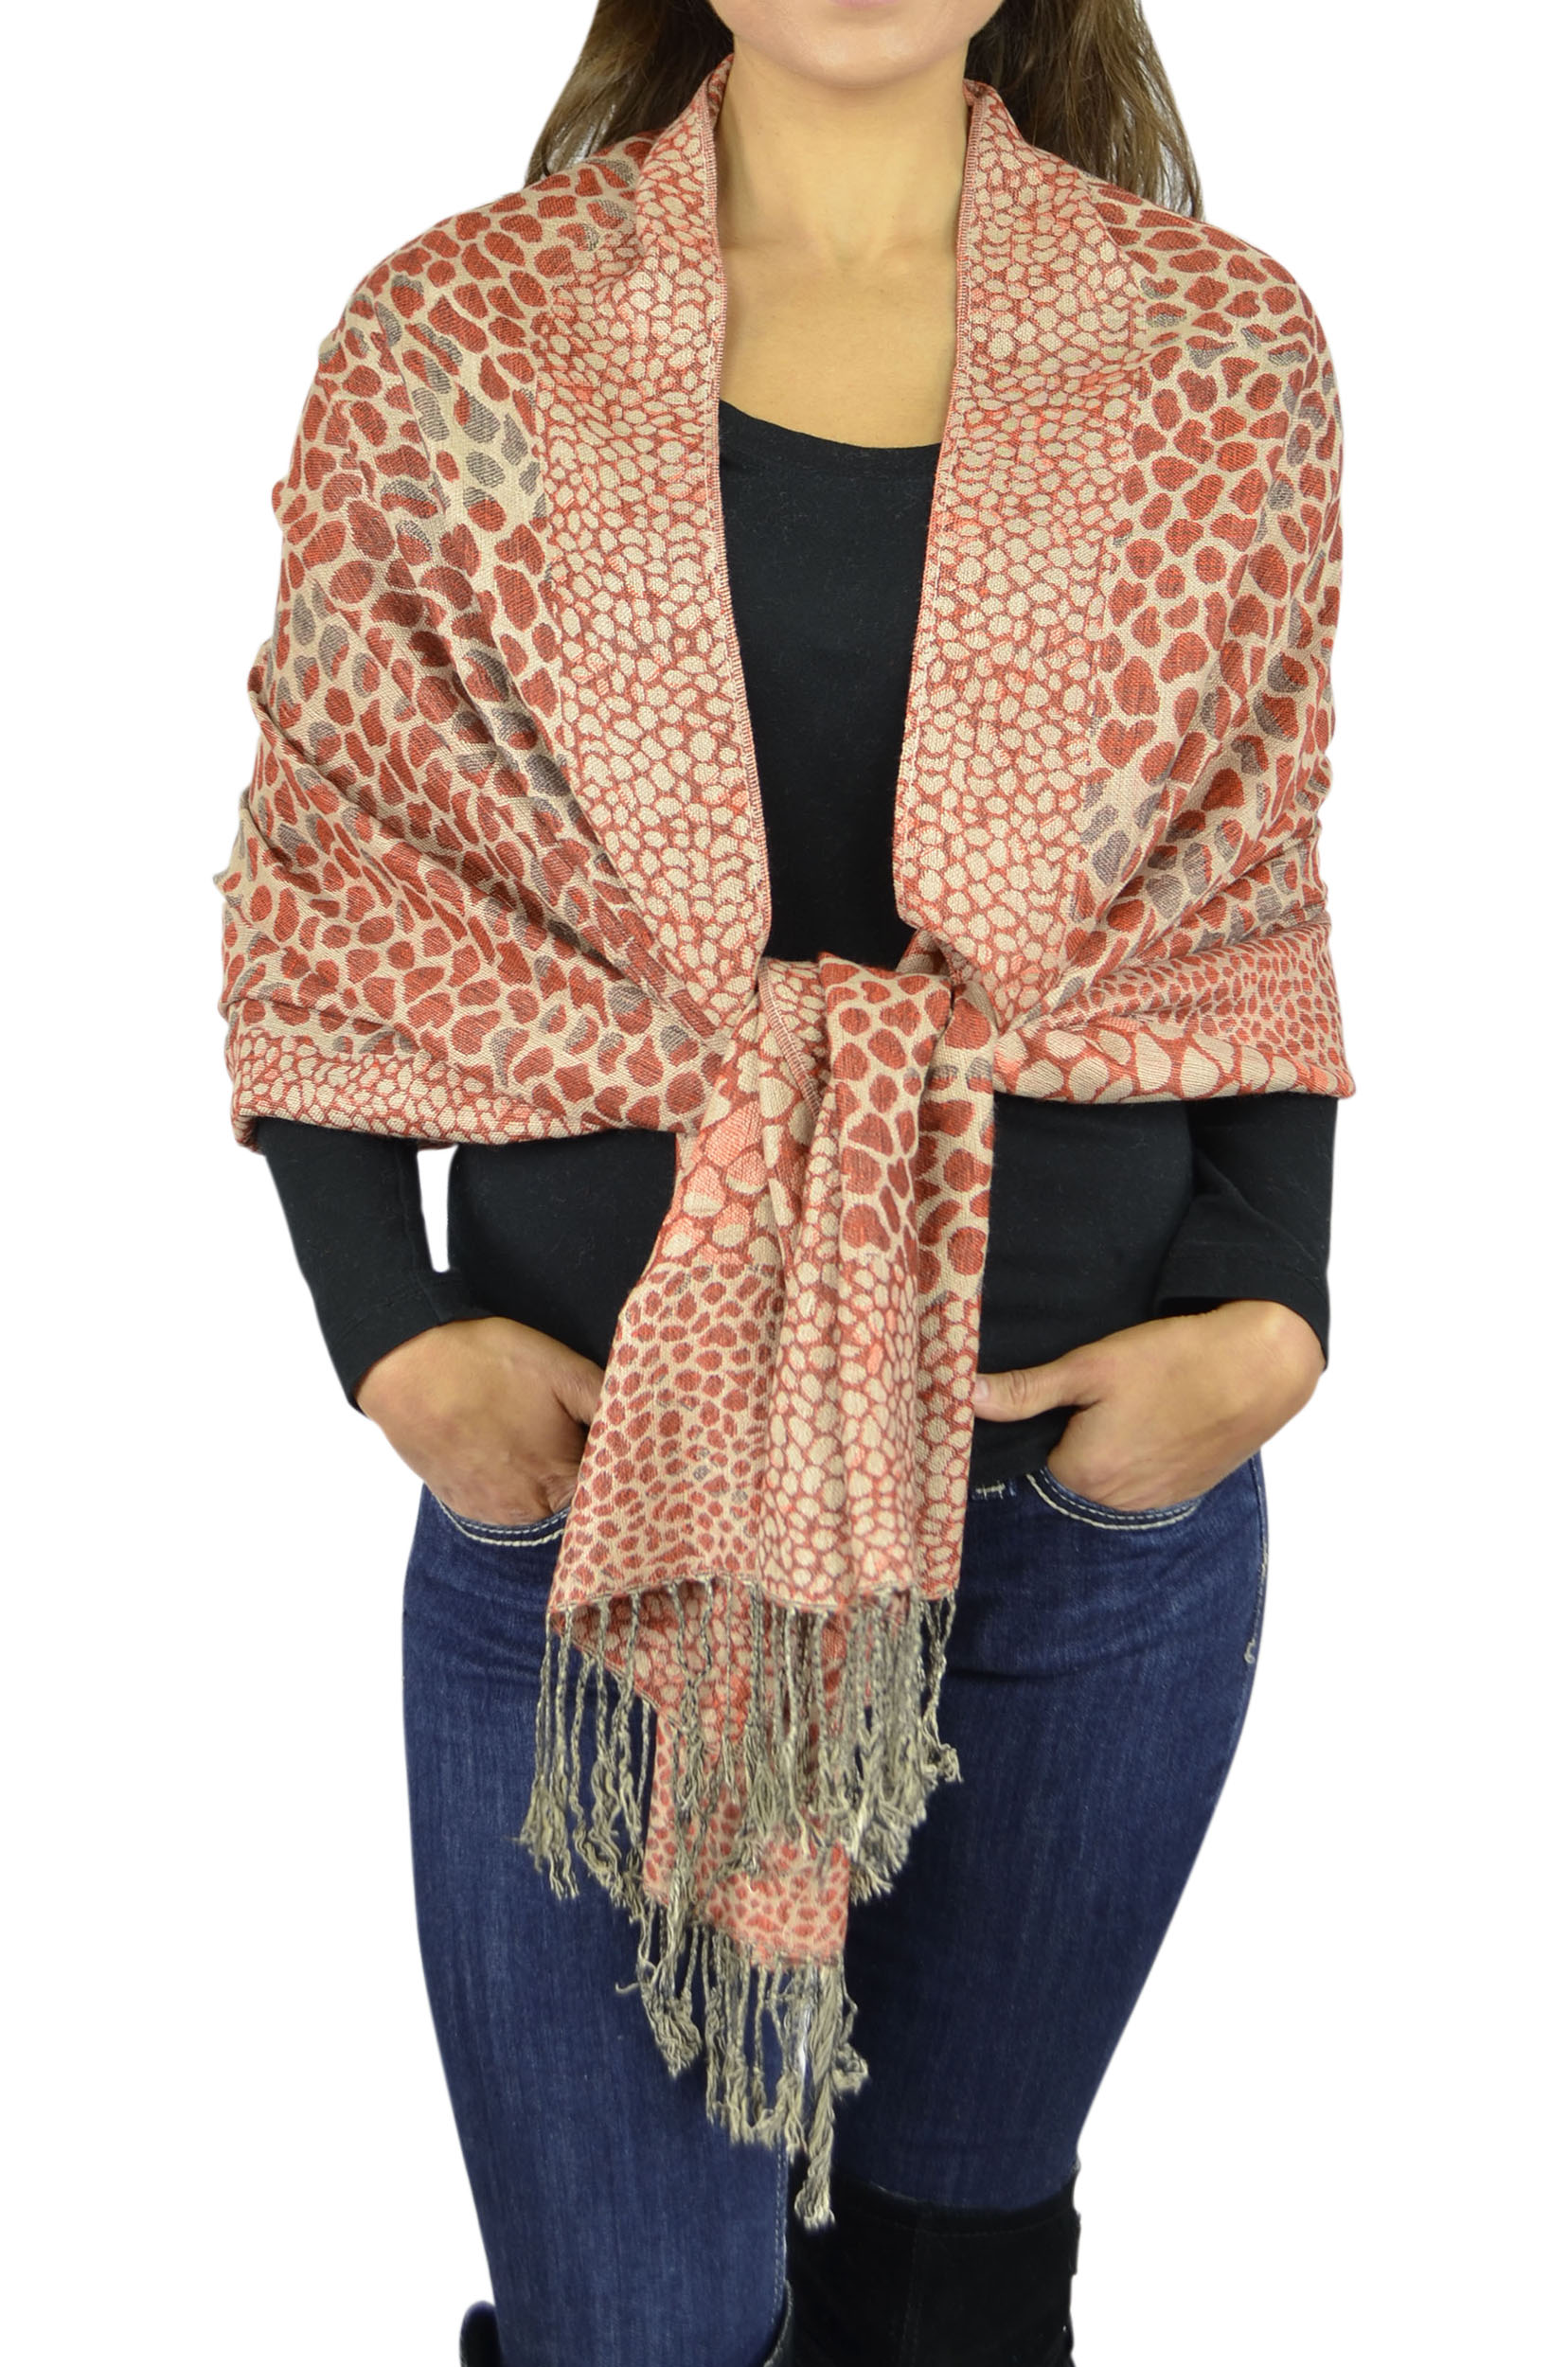 Pashmina Women Soft Wrap Shawl Animal Print Scarf By Belle Donne - Rust